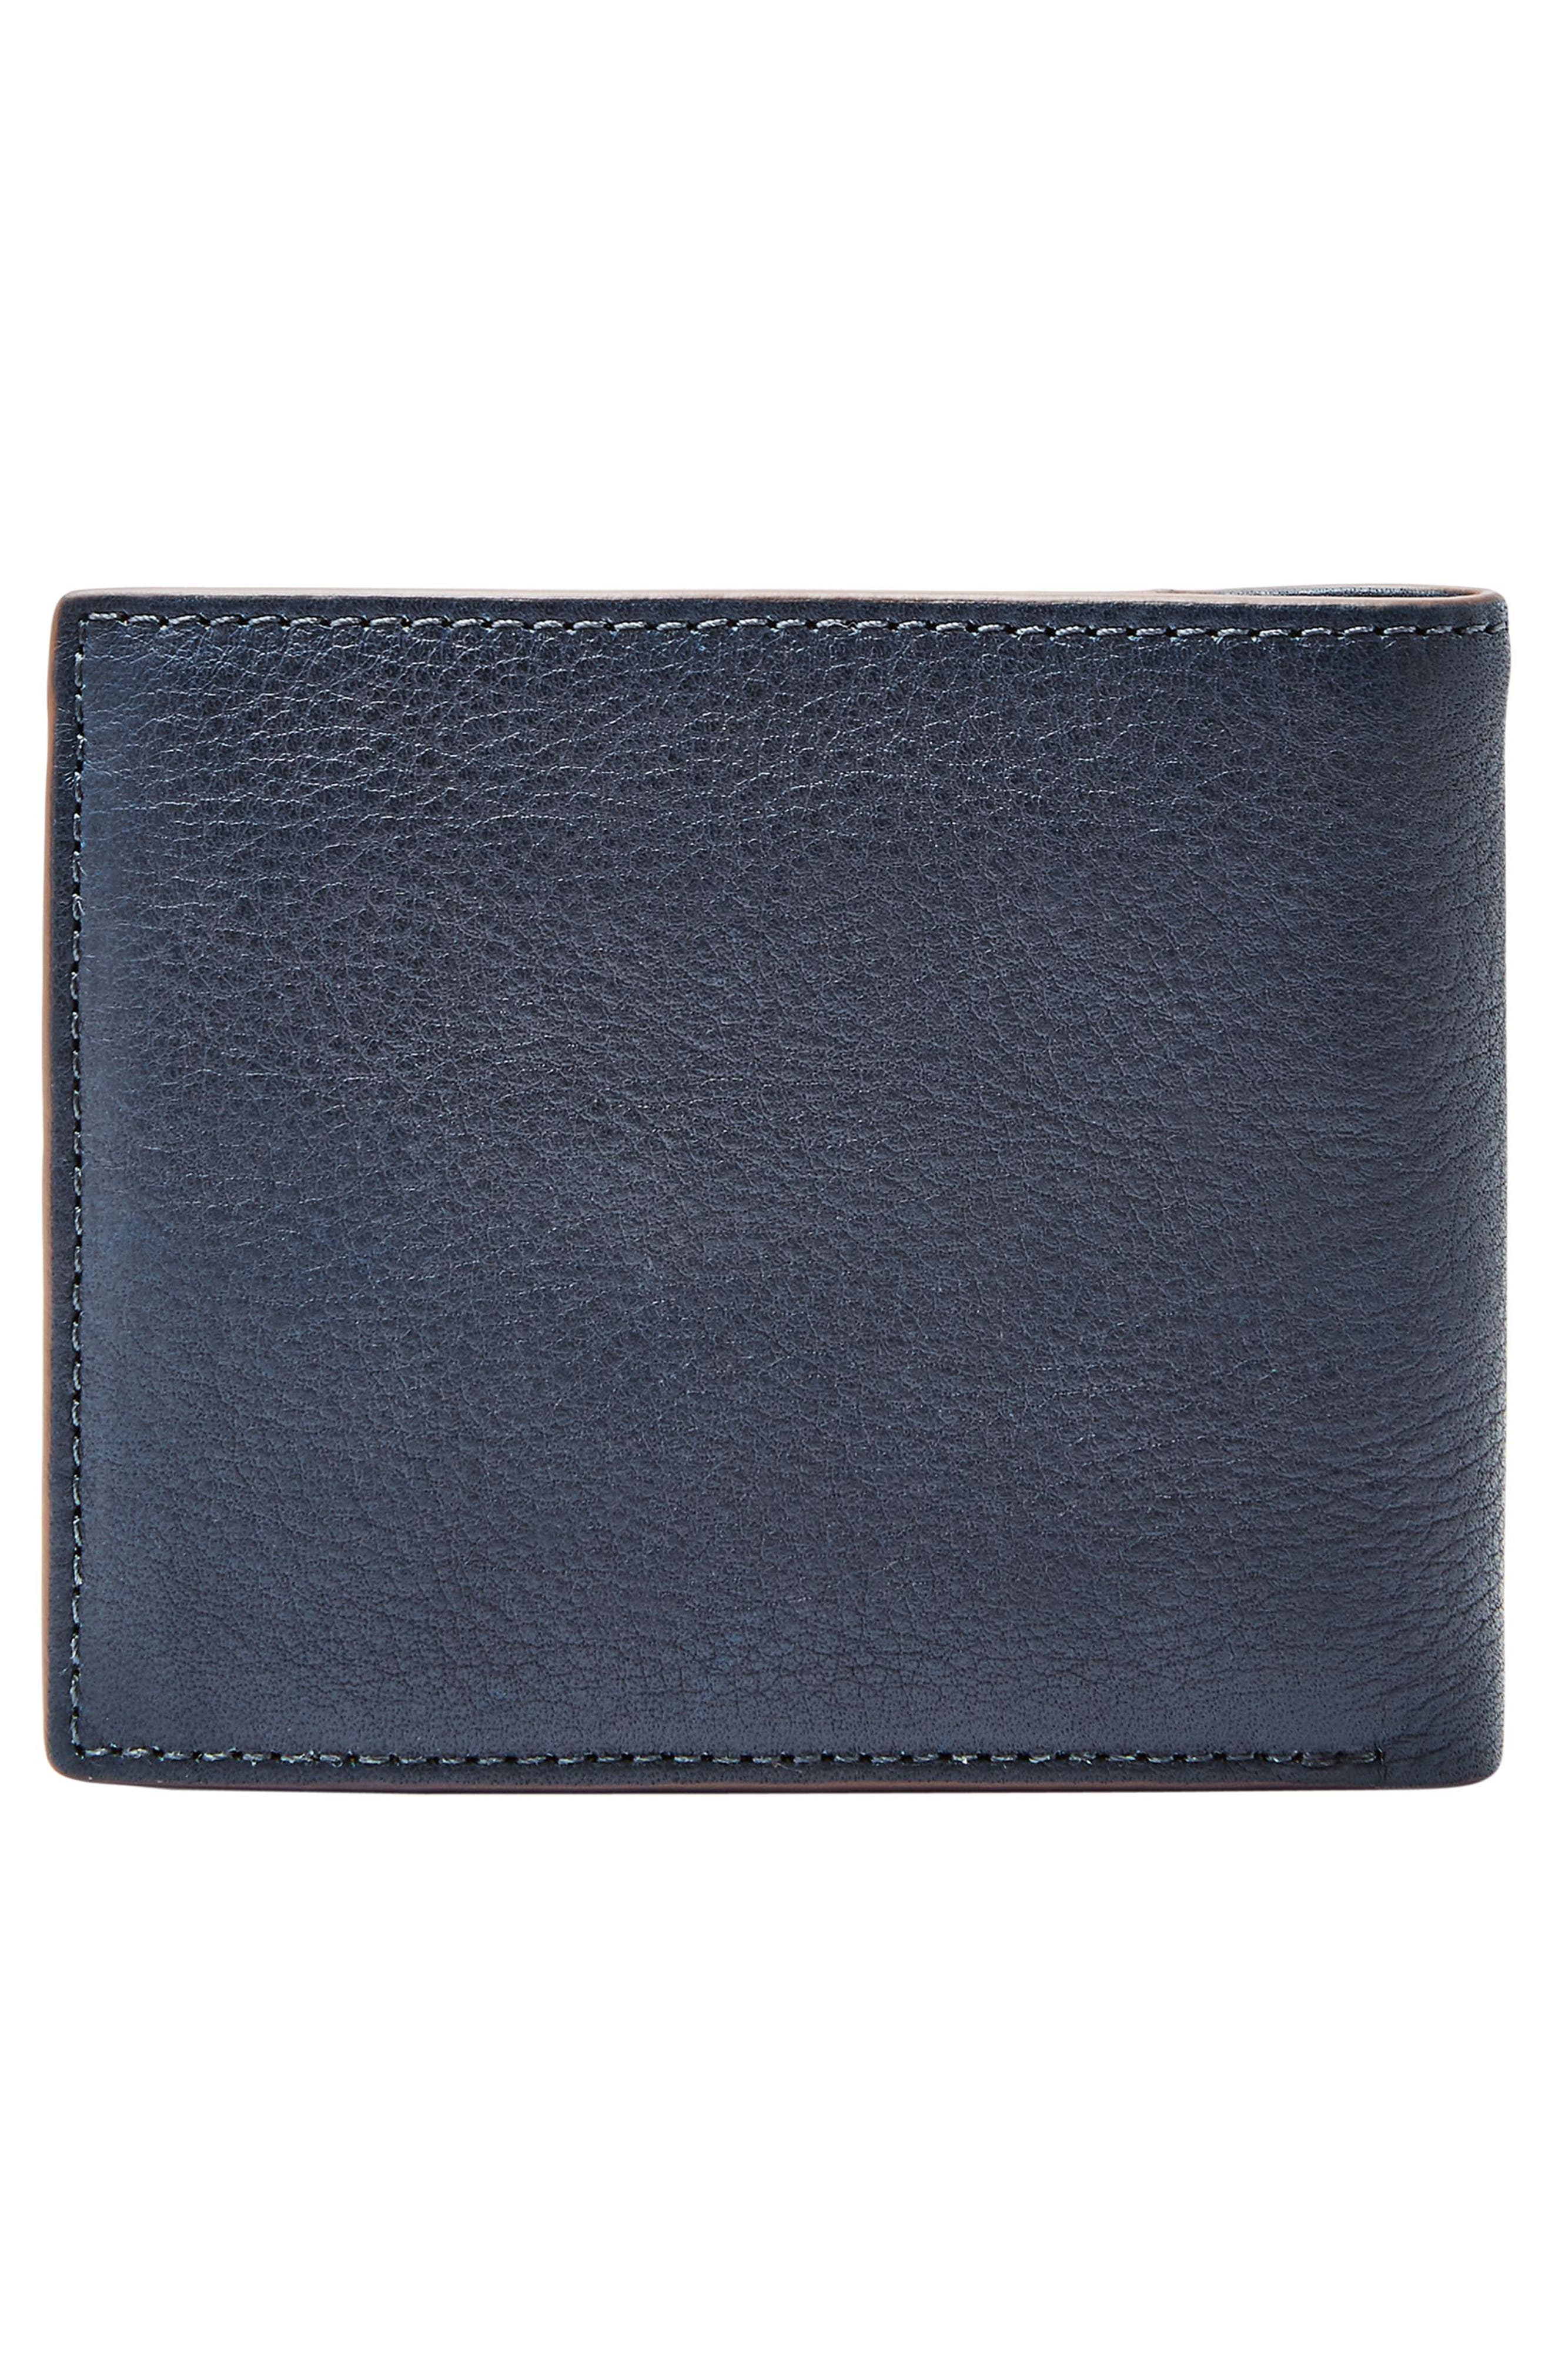 FOSSIL, Ward Leather Wallet, Alternate thumbnail 4, color, NAVY